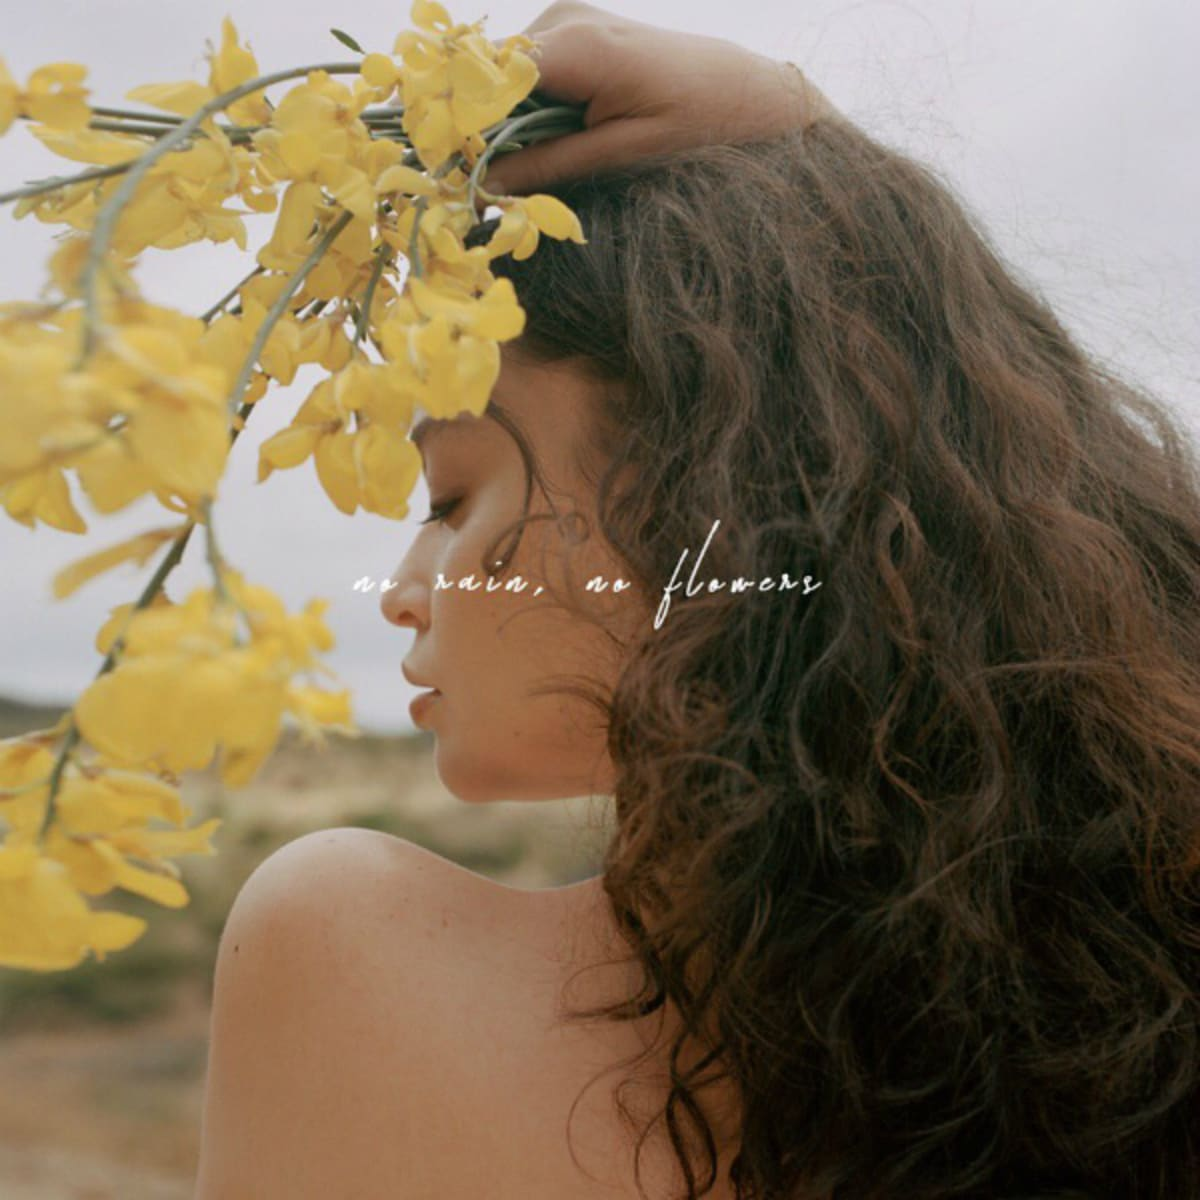 Sabrina Claudio Shares New No Rain No Flowers Project Complex